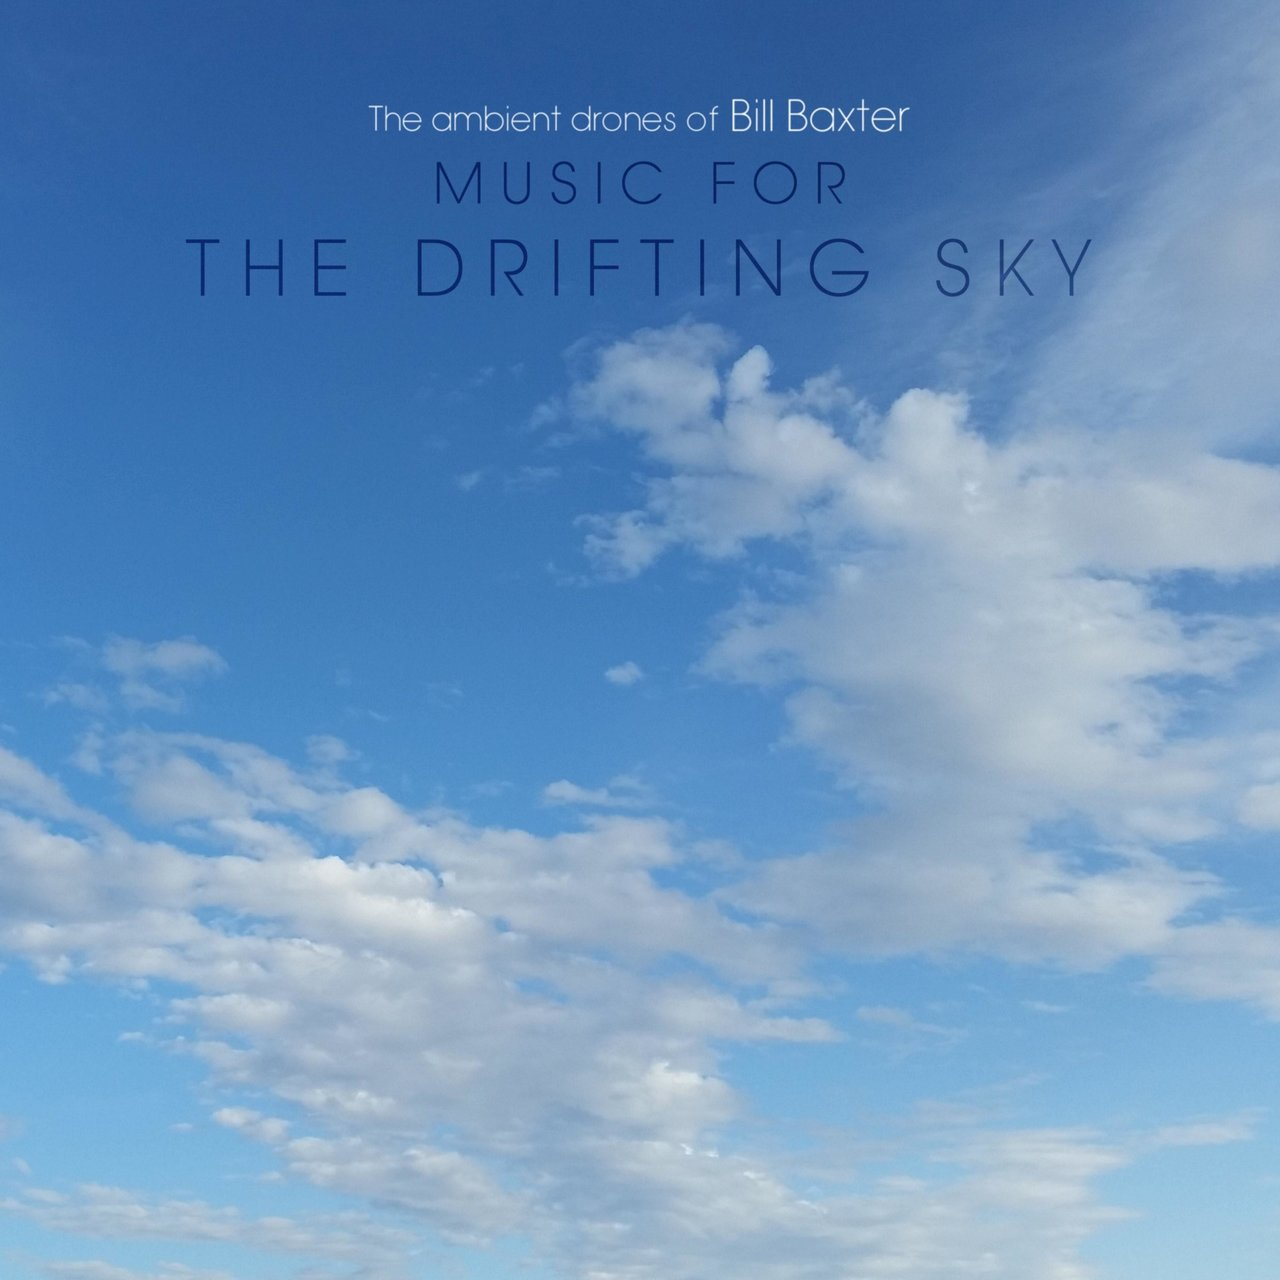 Music for the Drifting Sky